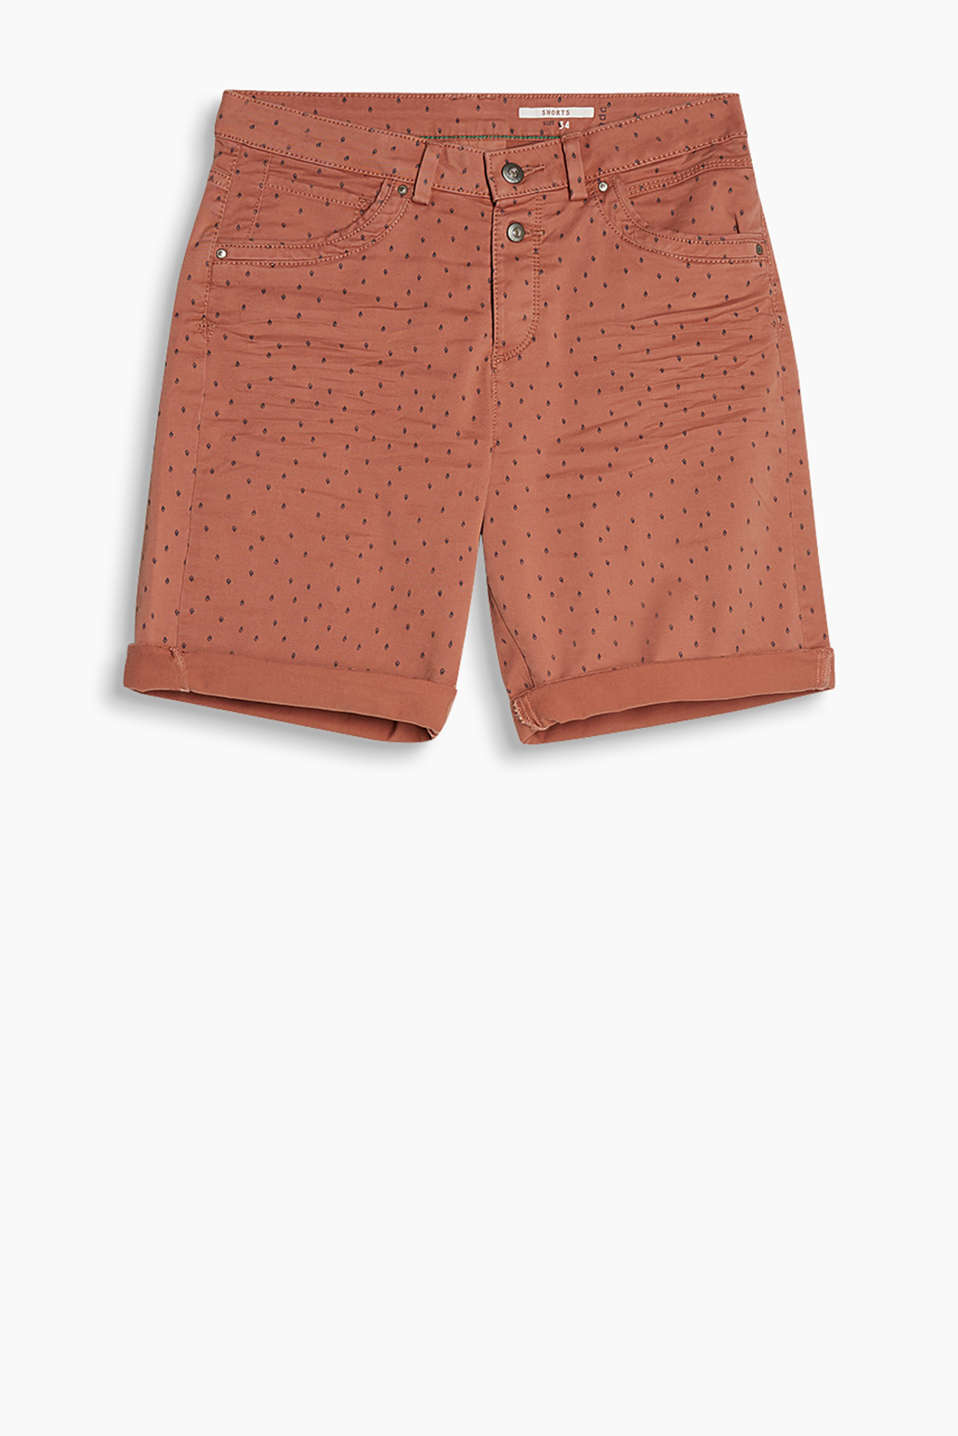 Loose-cut shorts with a minimalist pattern